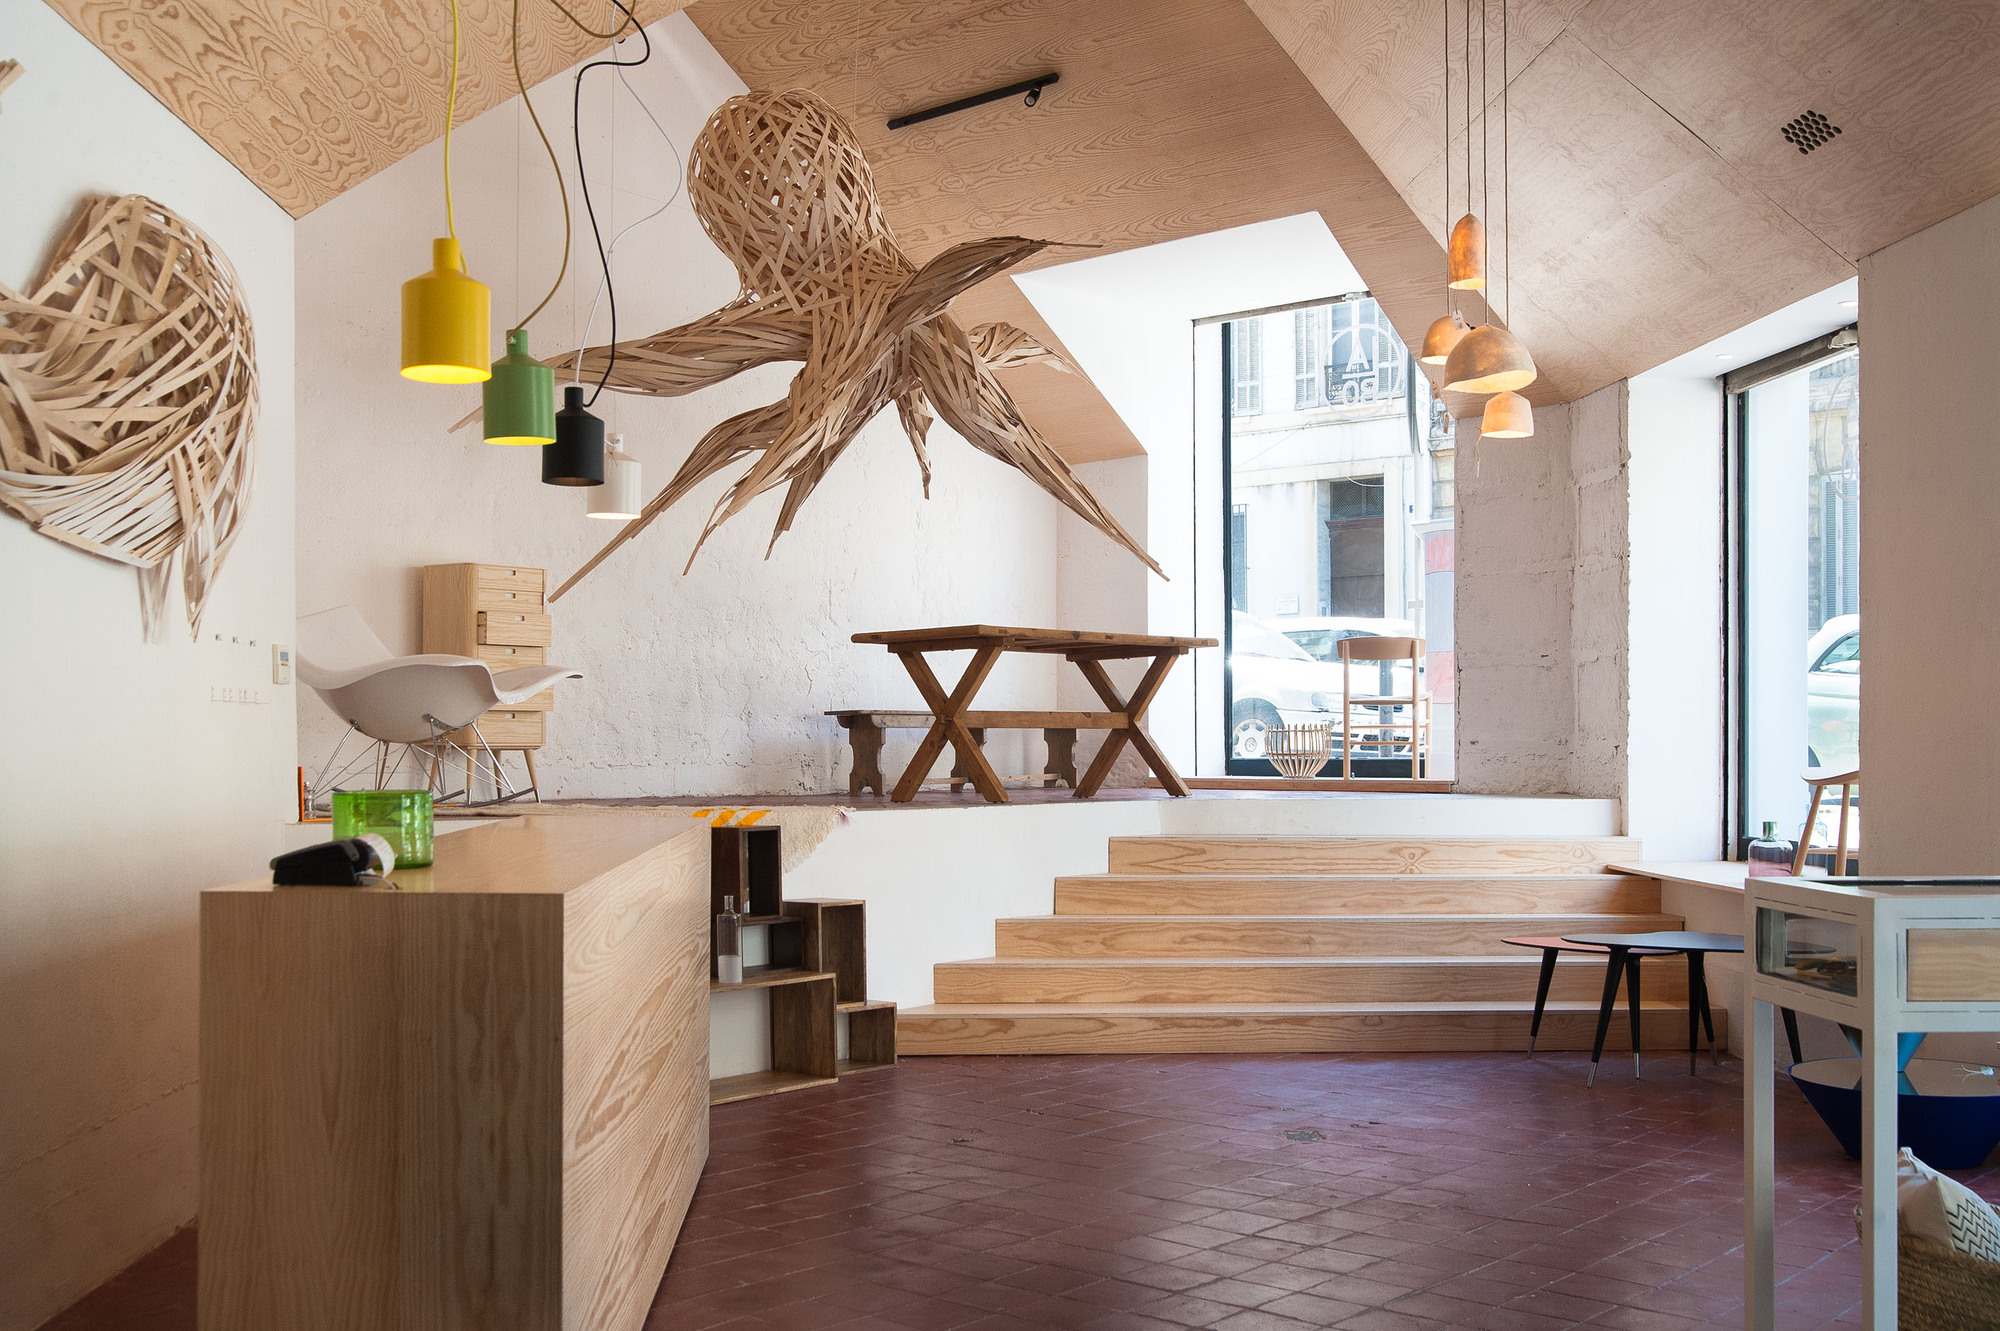 Shop and Exhibition Space in Marseille / Atelier M3a Architectes (10)